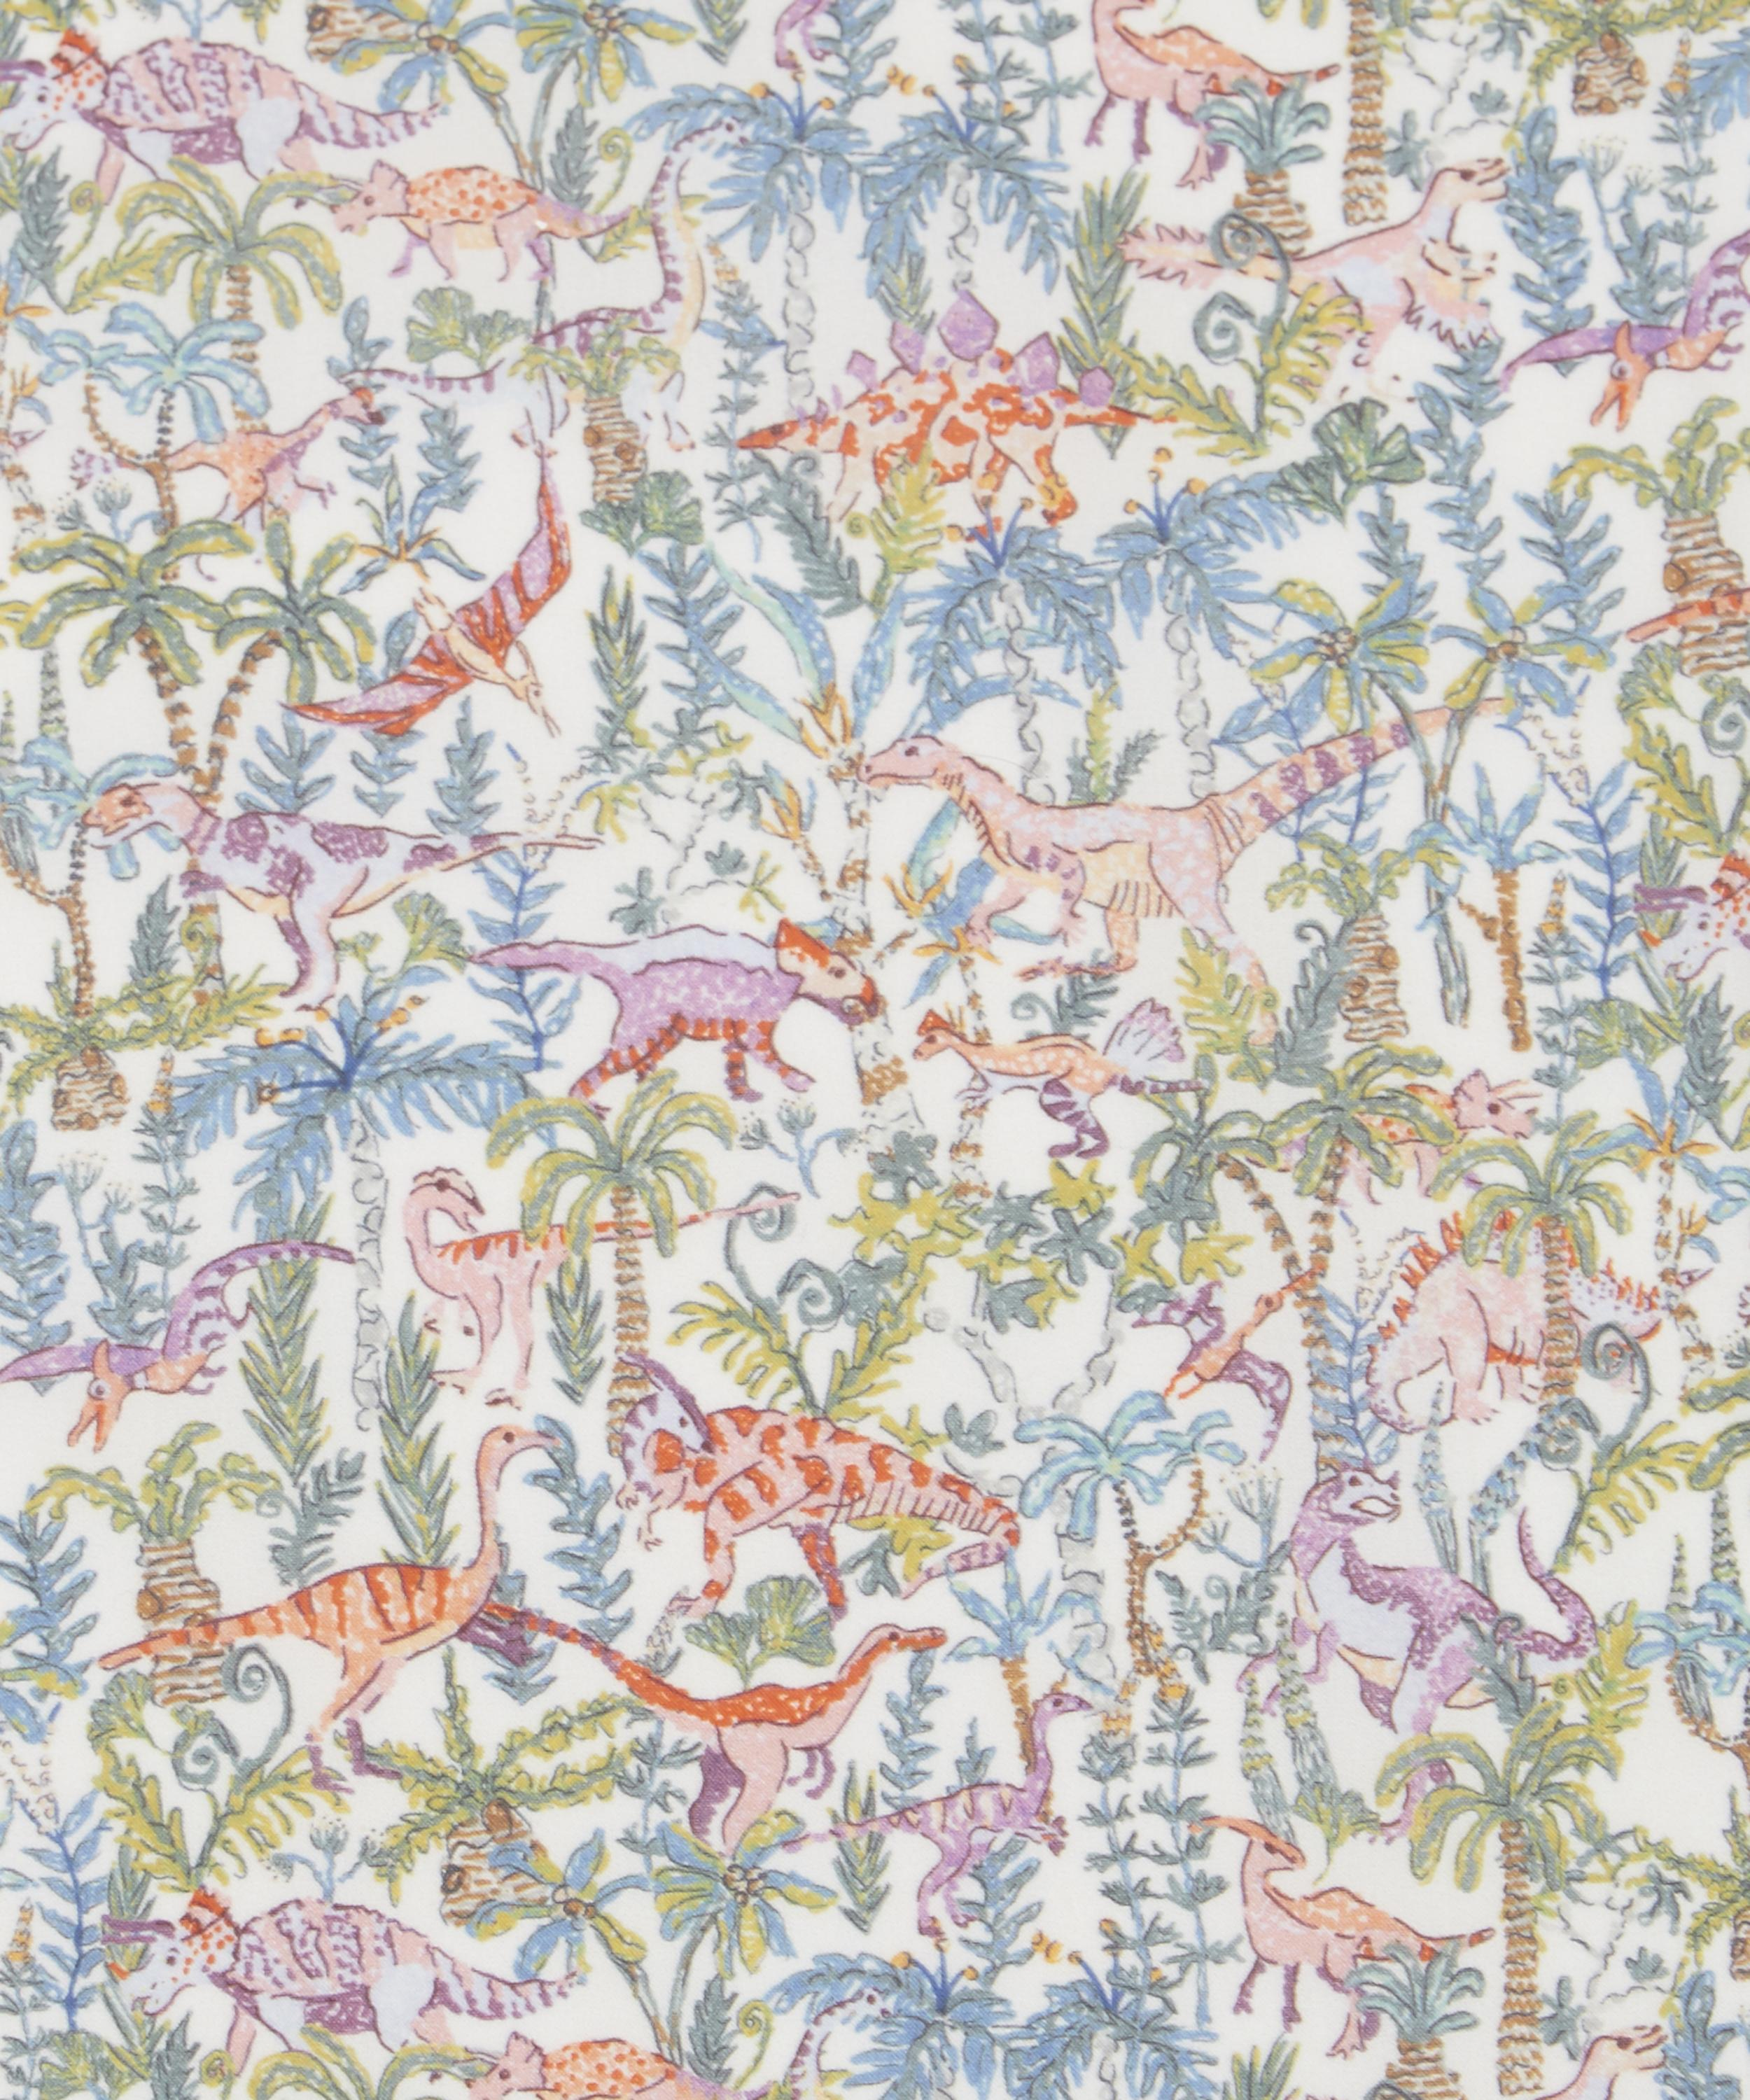 a0a04f307473f Rumble And Roar Tana Lawn Cotton   Liberty London